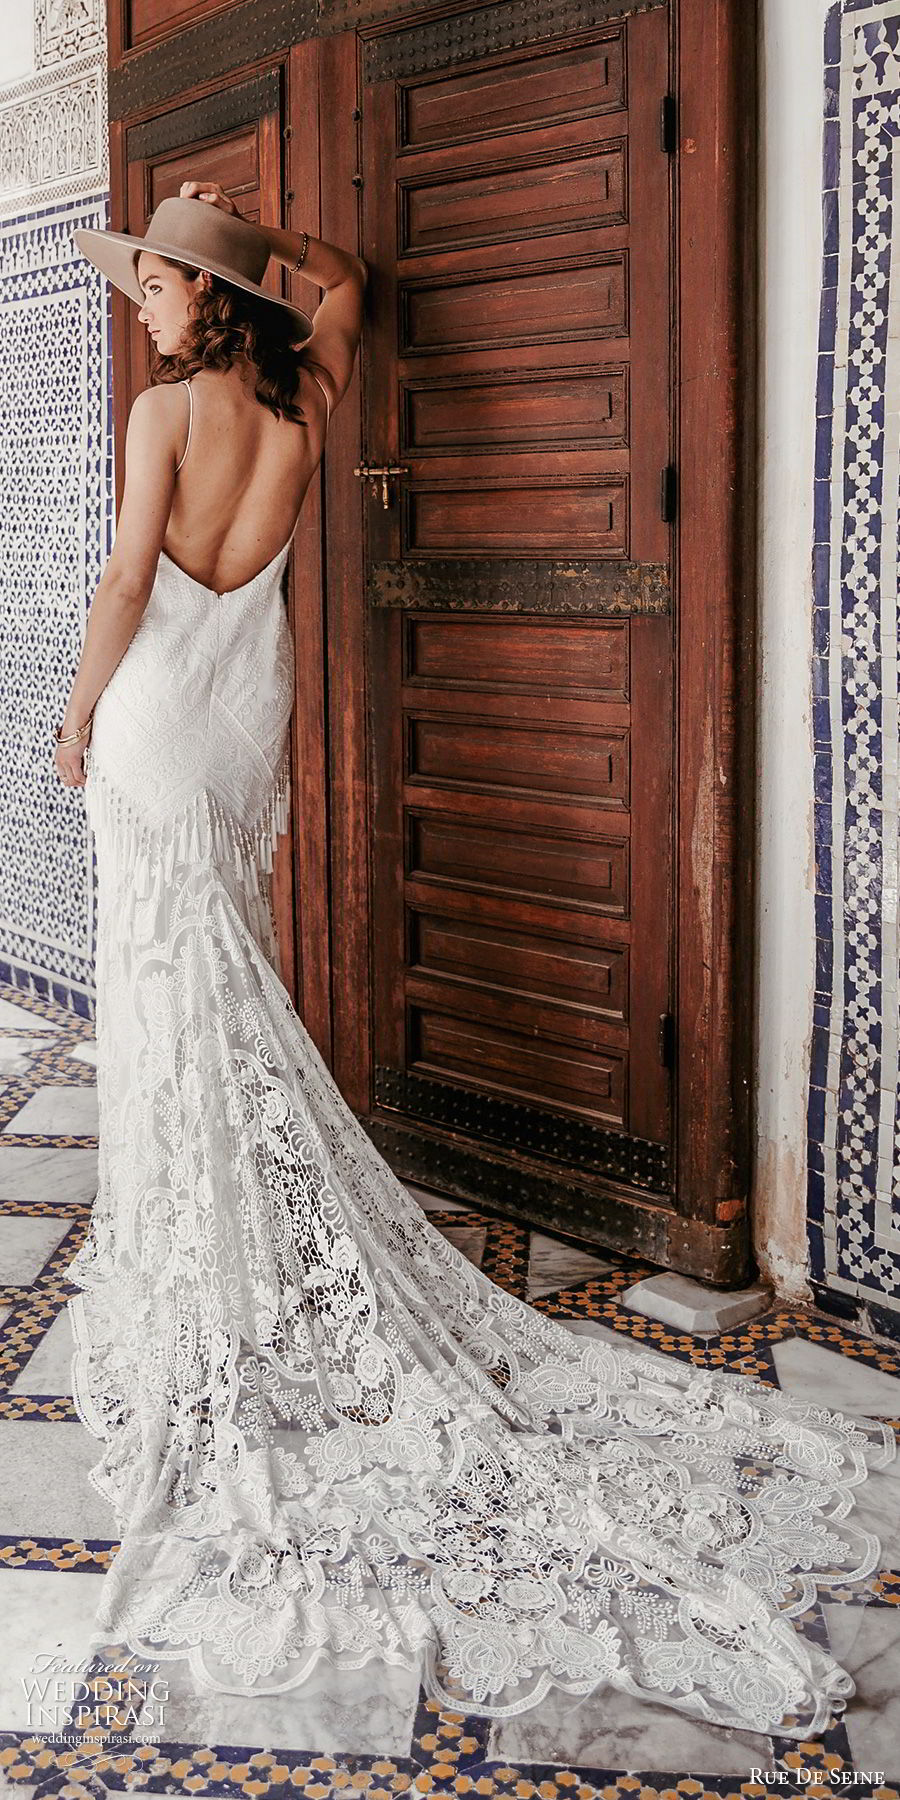 rue de seine 2019 bridal sleeveless thin straps plunging v neckline fully embellished lace modified a line wedding dress (18) boho chic romantic low back chapel train bv